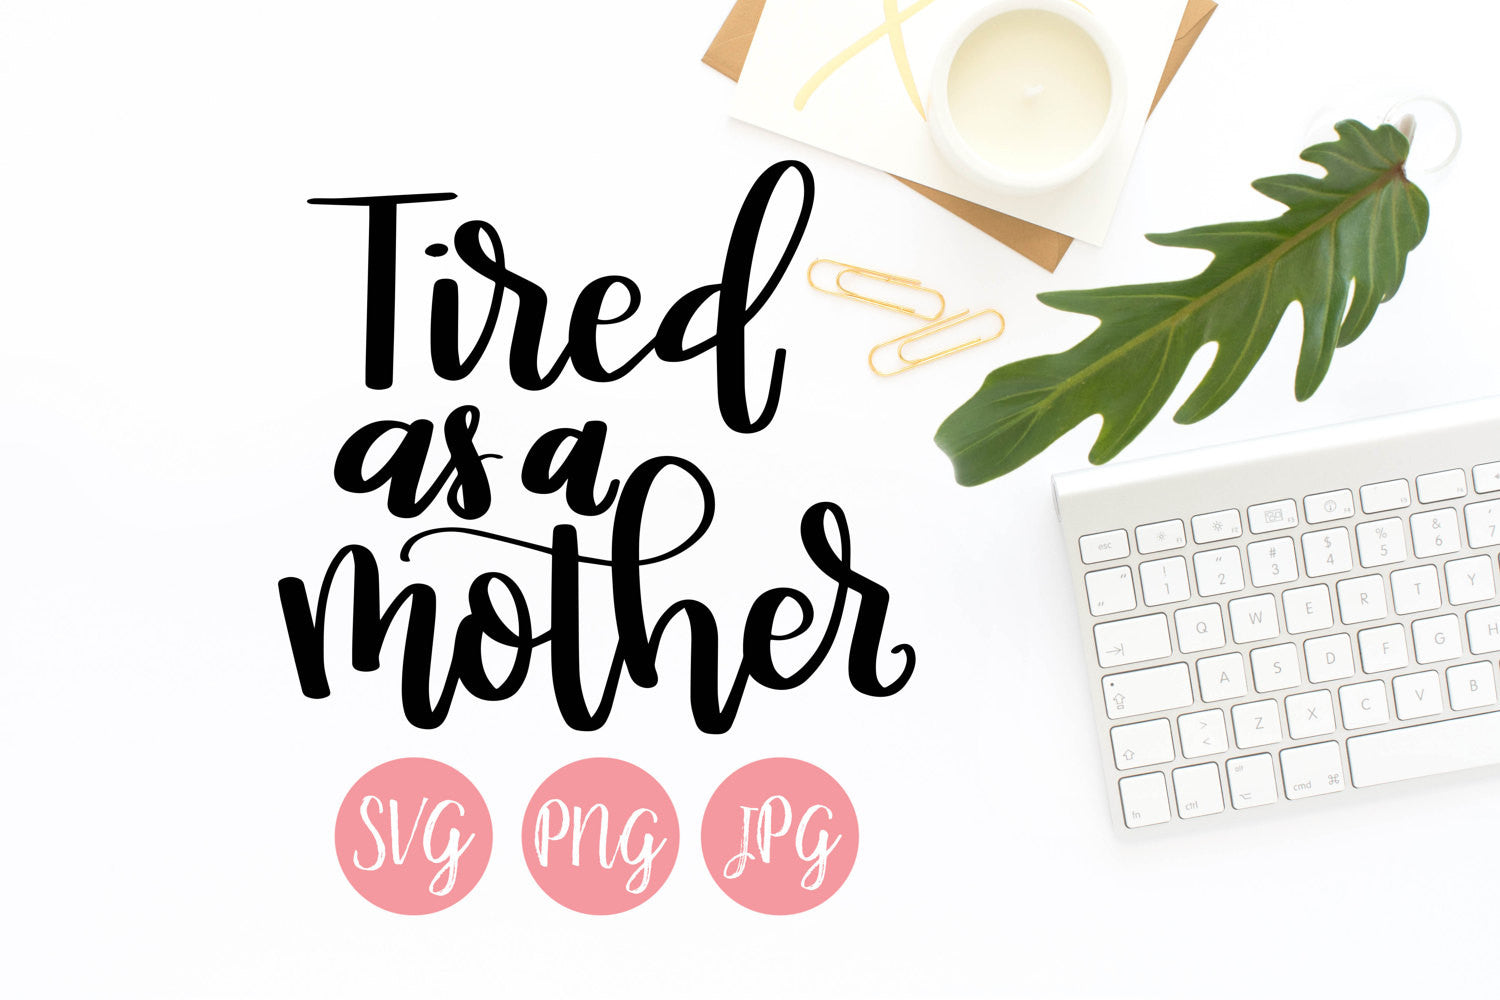 Tired as a Mother Hand Lettered SVG PNG JPEG - The Chaotically Creative Mom